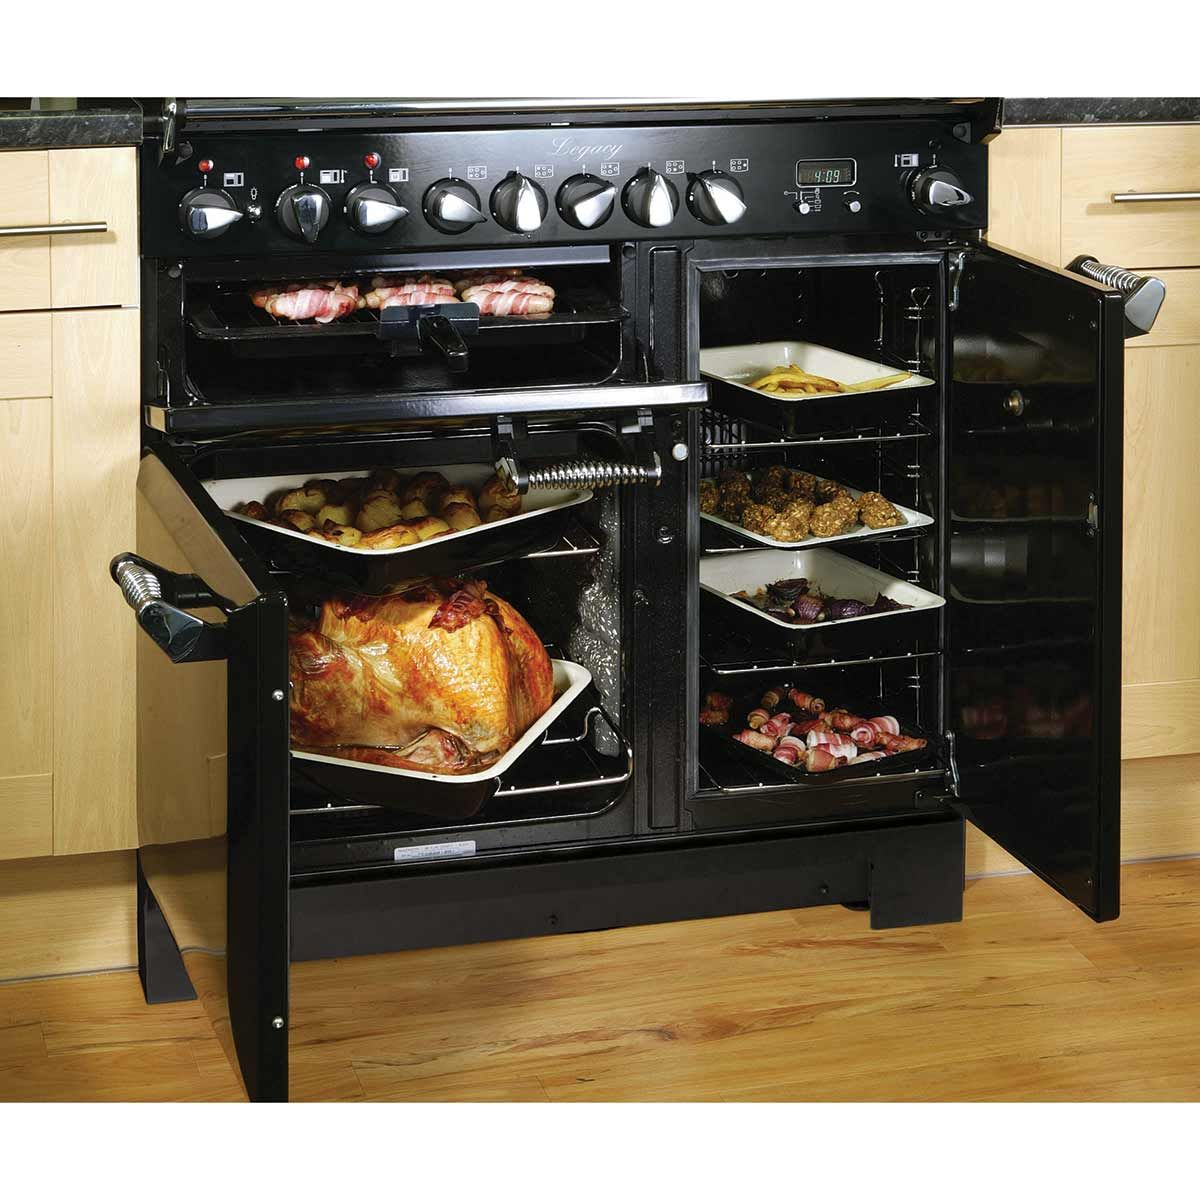 appliance buying guide why smaller ovens are actually better aleg rh pinterest com GE Appliances Retro Look Aga Legacy Series